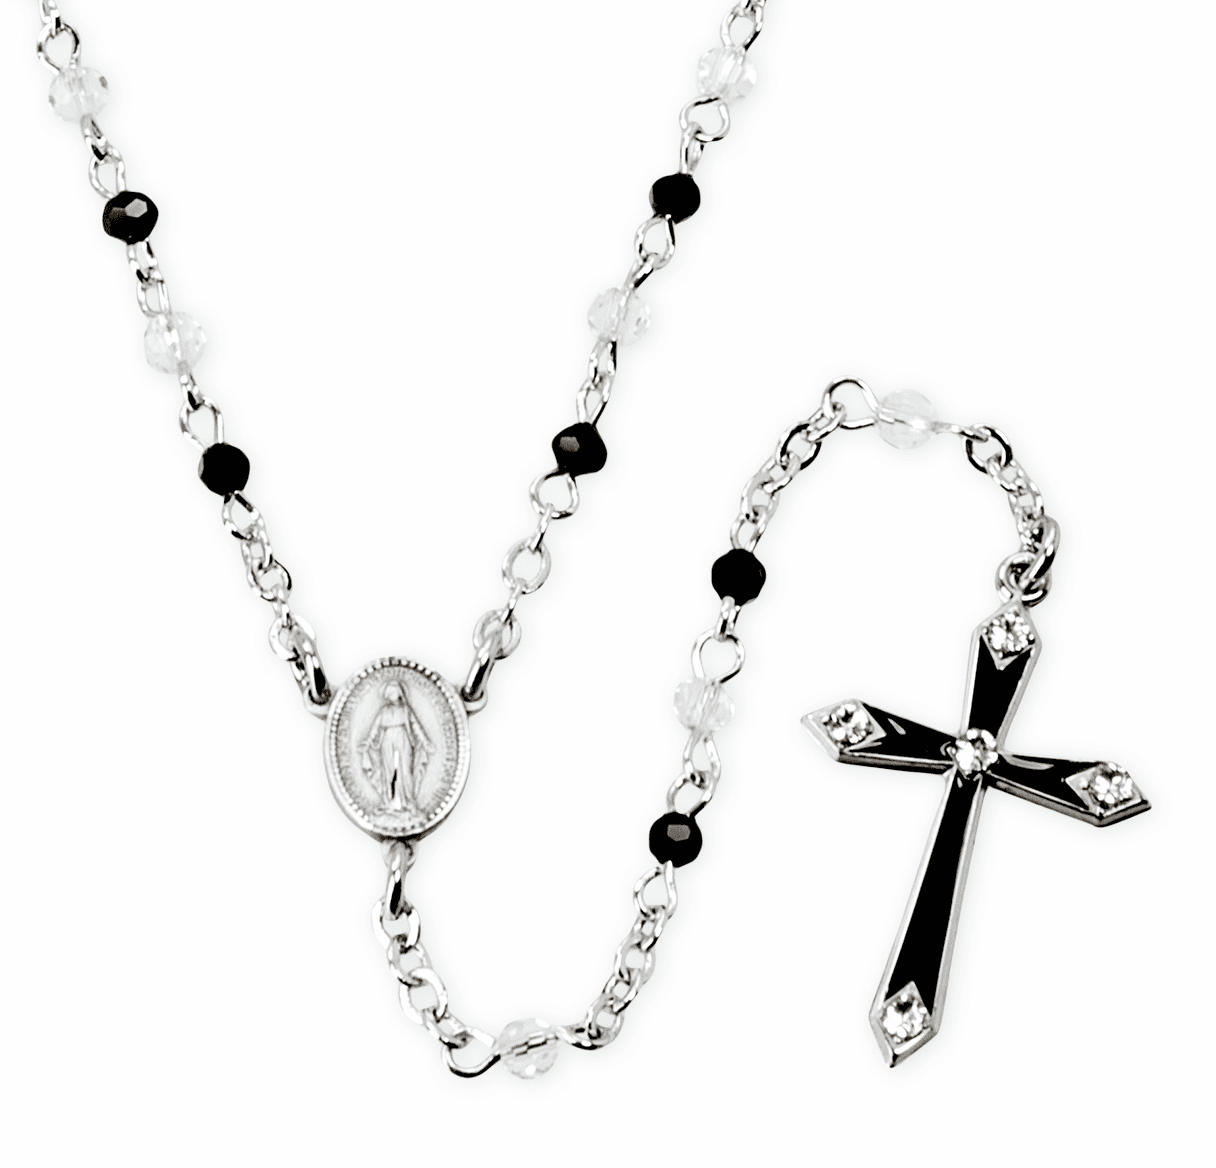 HMH Religious Black and Crystal Rosary Necklace w/Black Enameled Cross